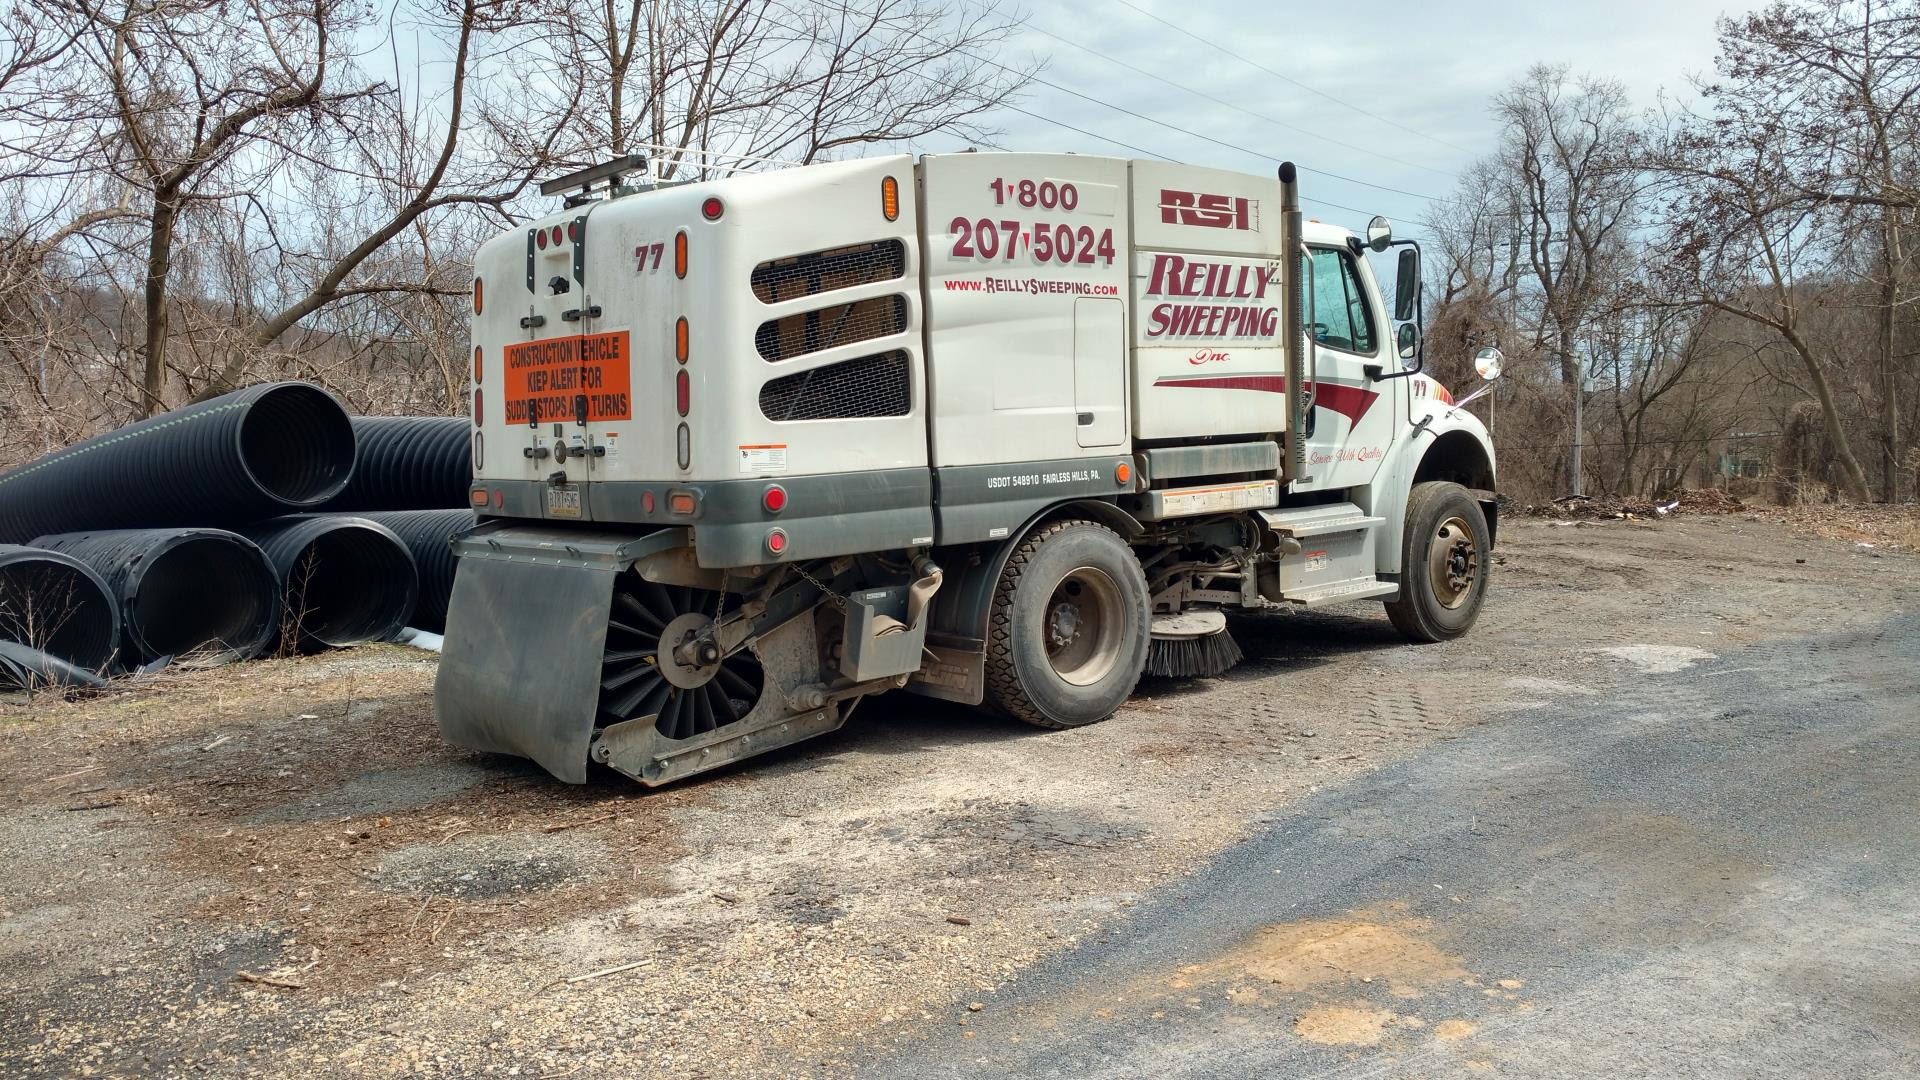 Lower Merion Township Street Sweeping